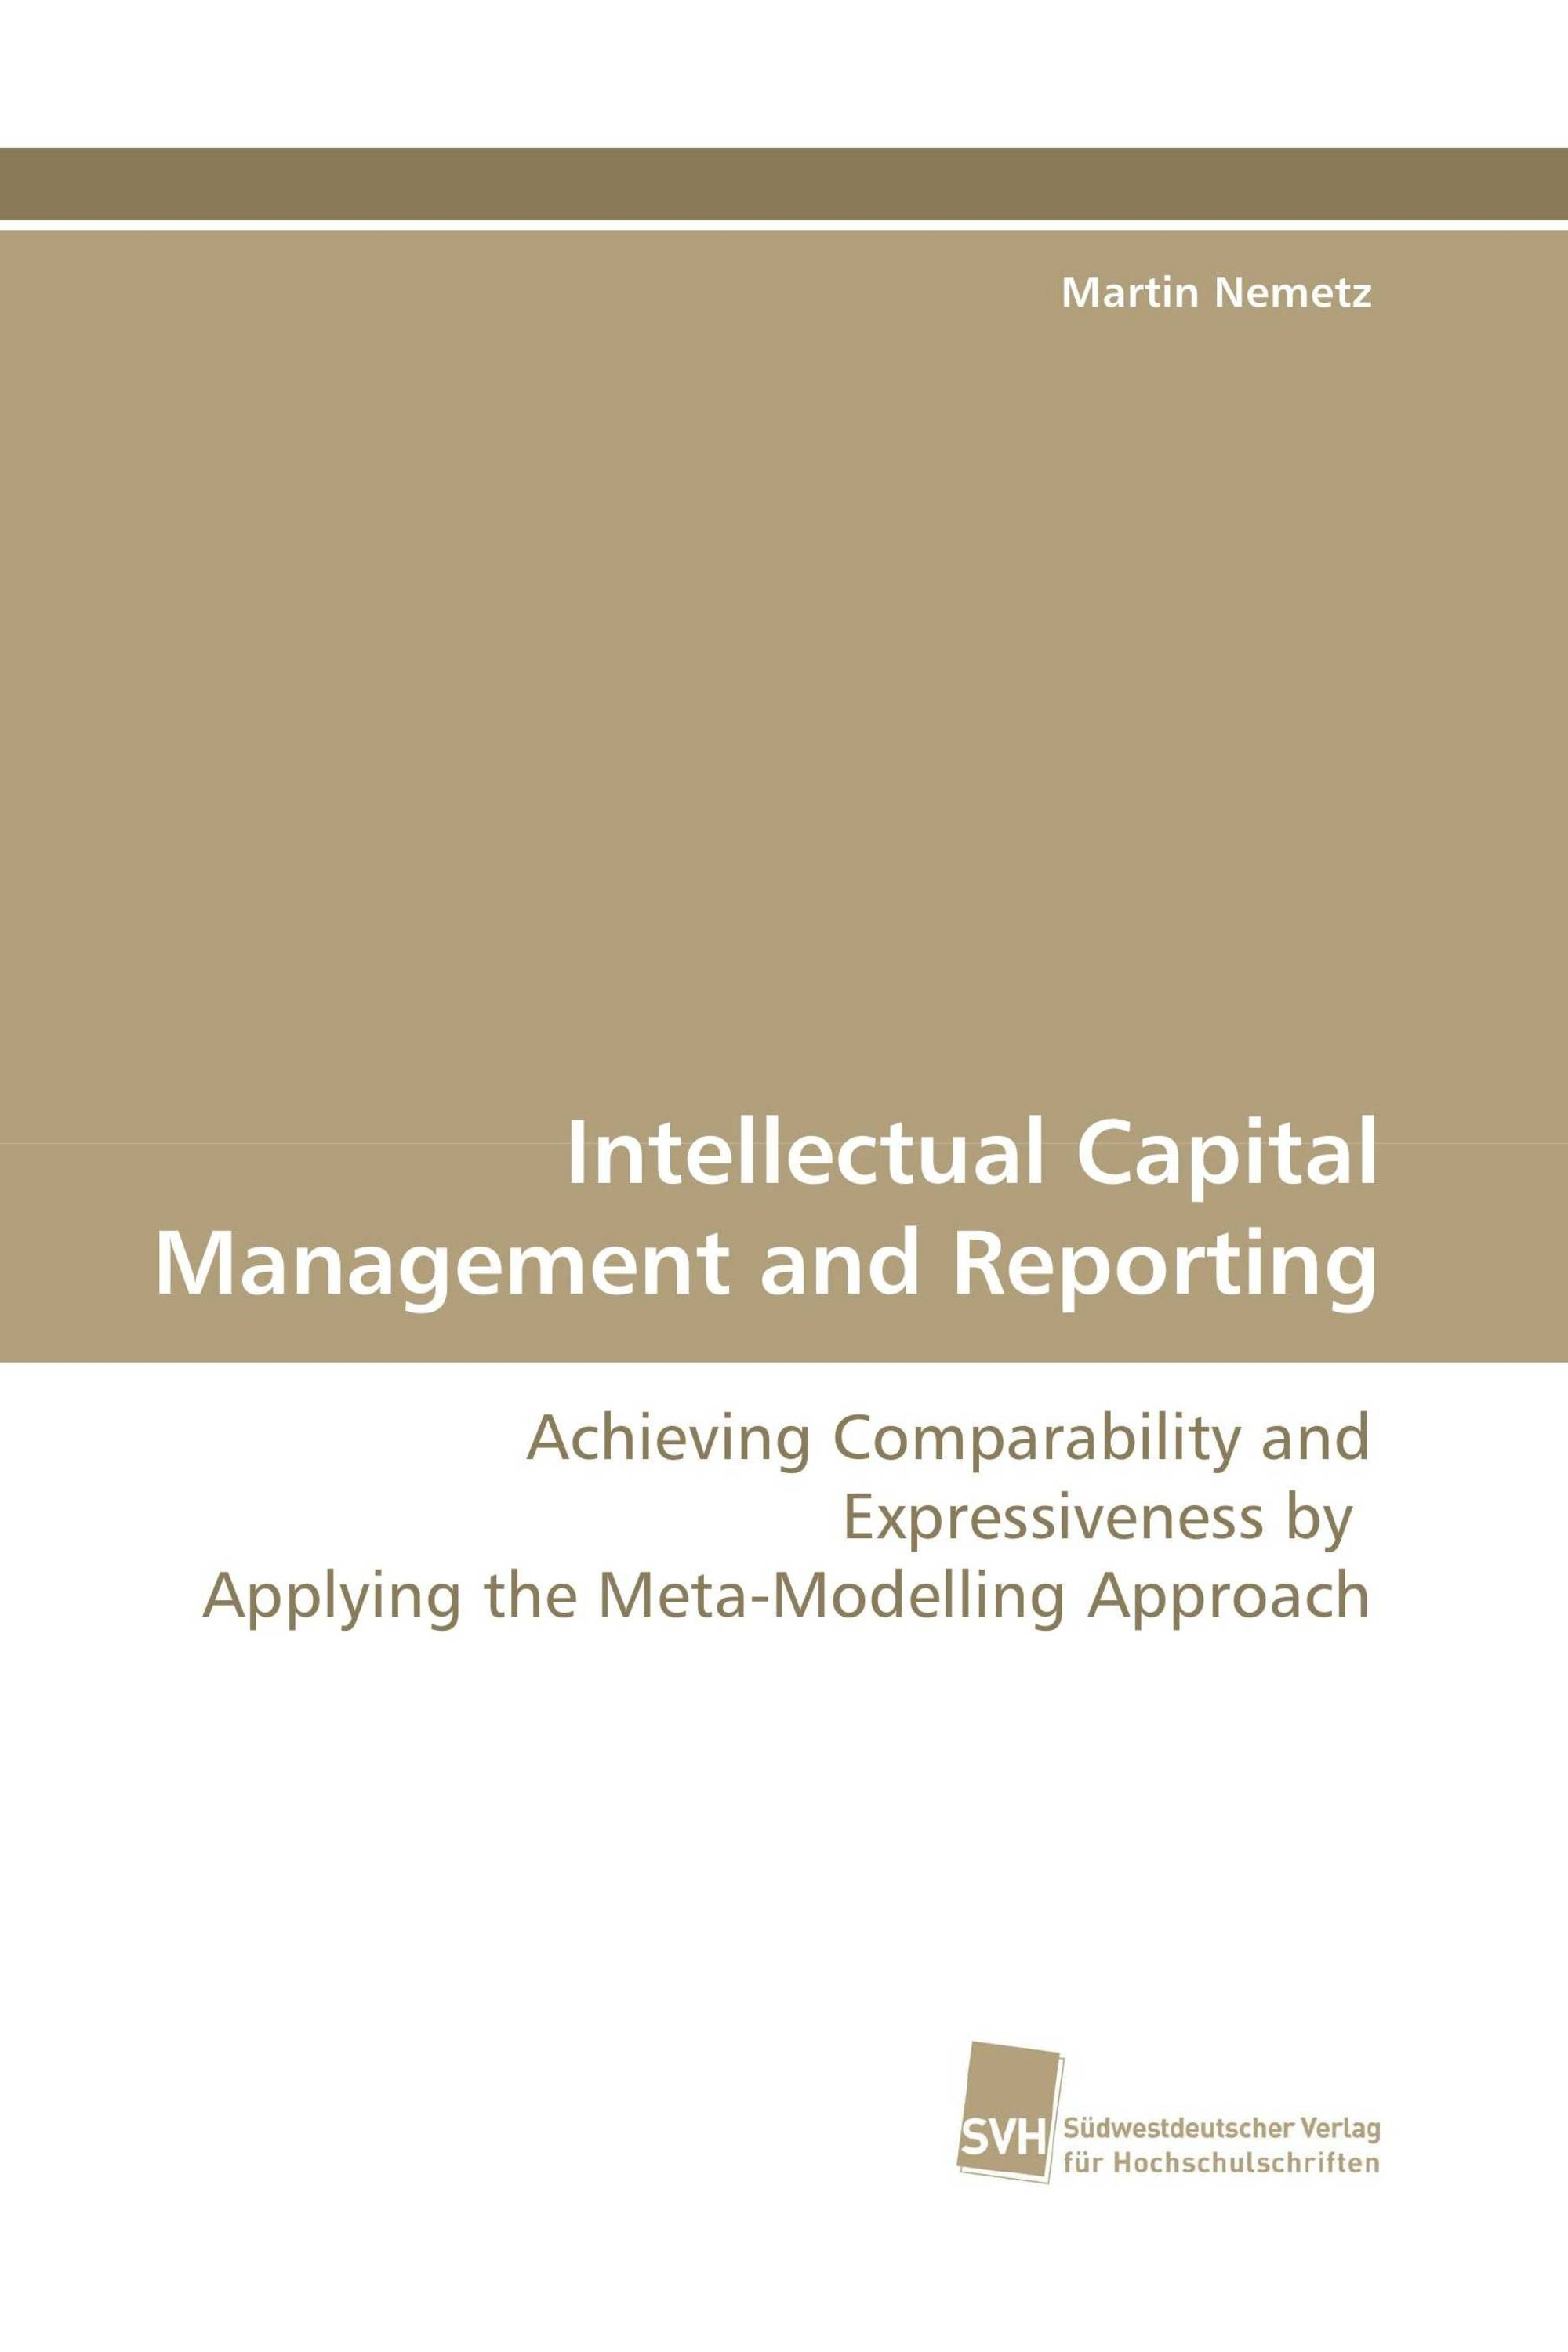 Intellectual Capital Management and Reporting